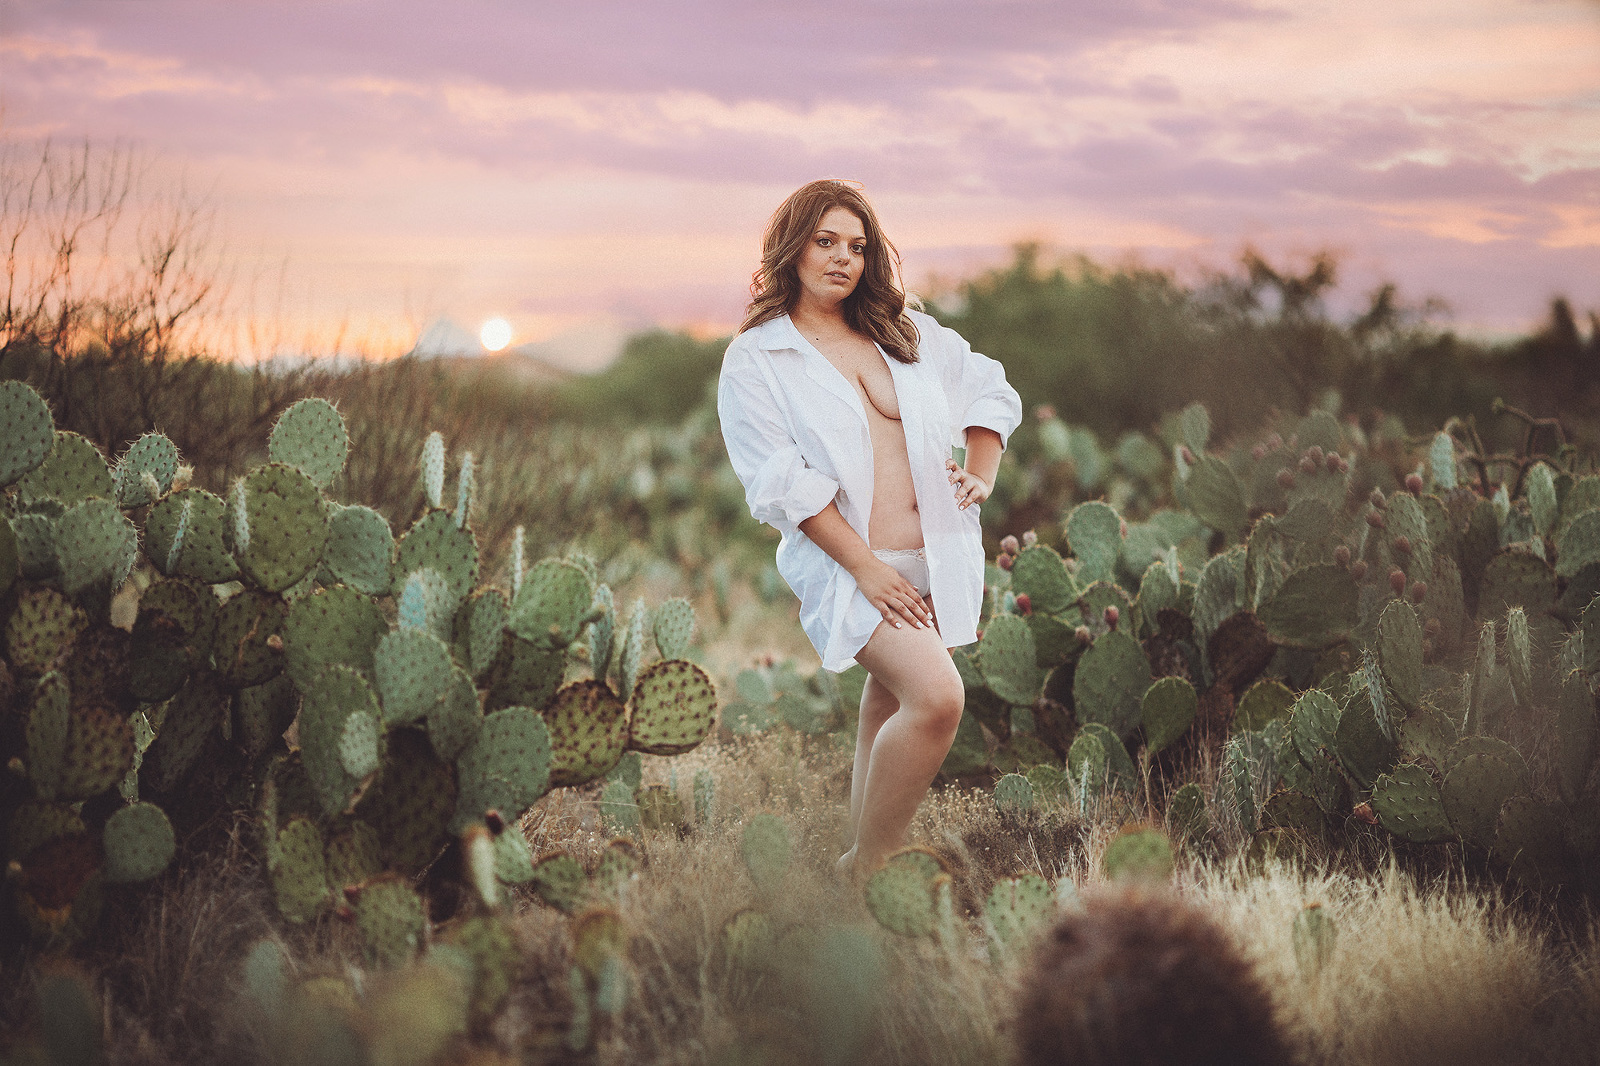 A young woman in a white shirt during her desert sunset boudoir session